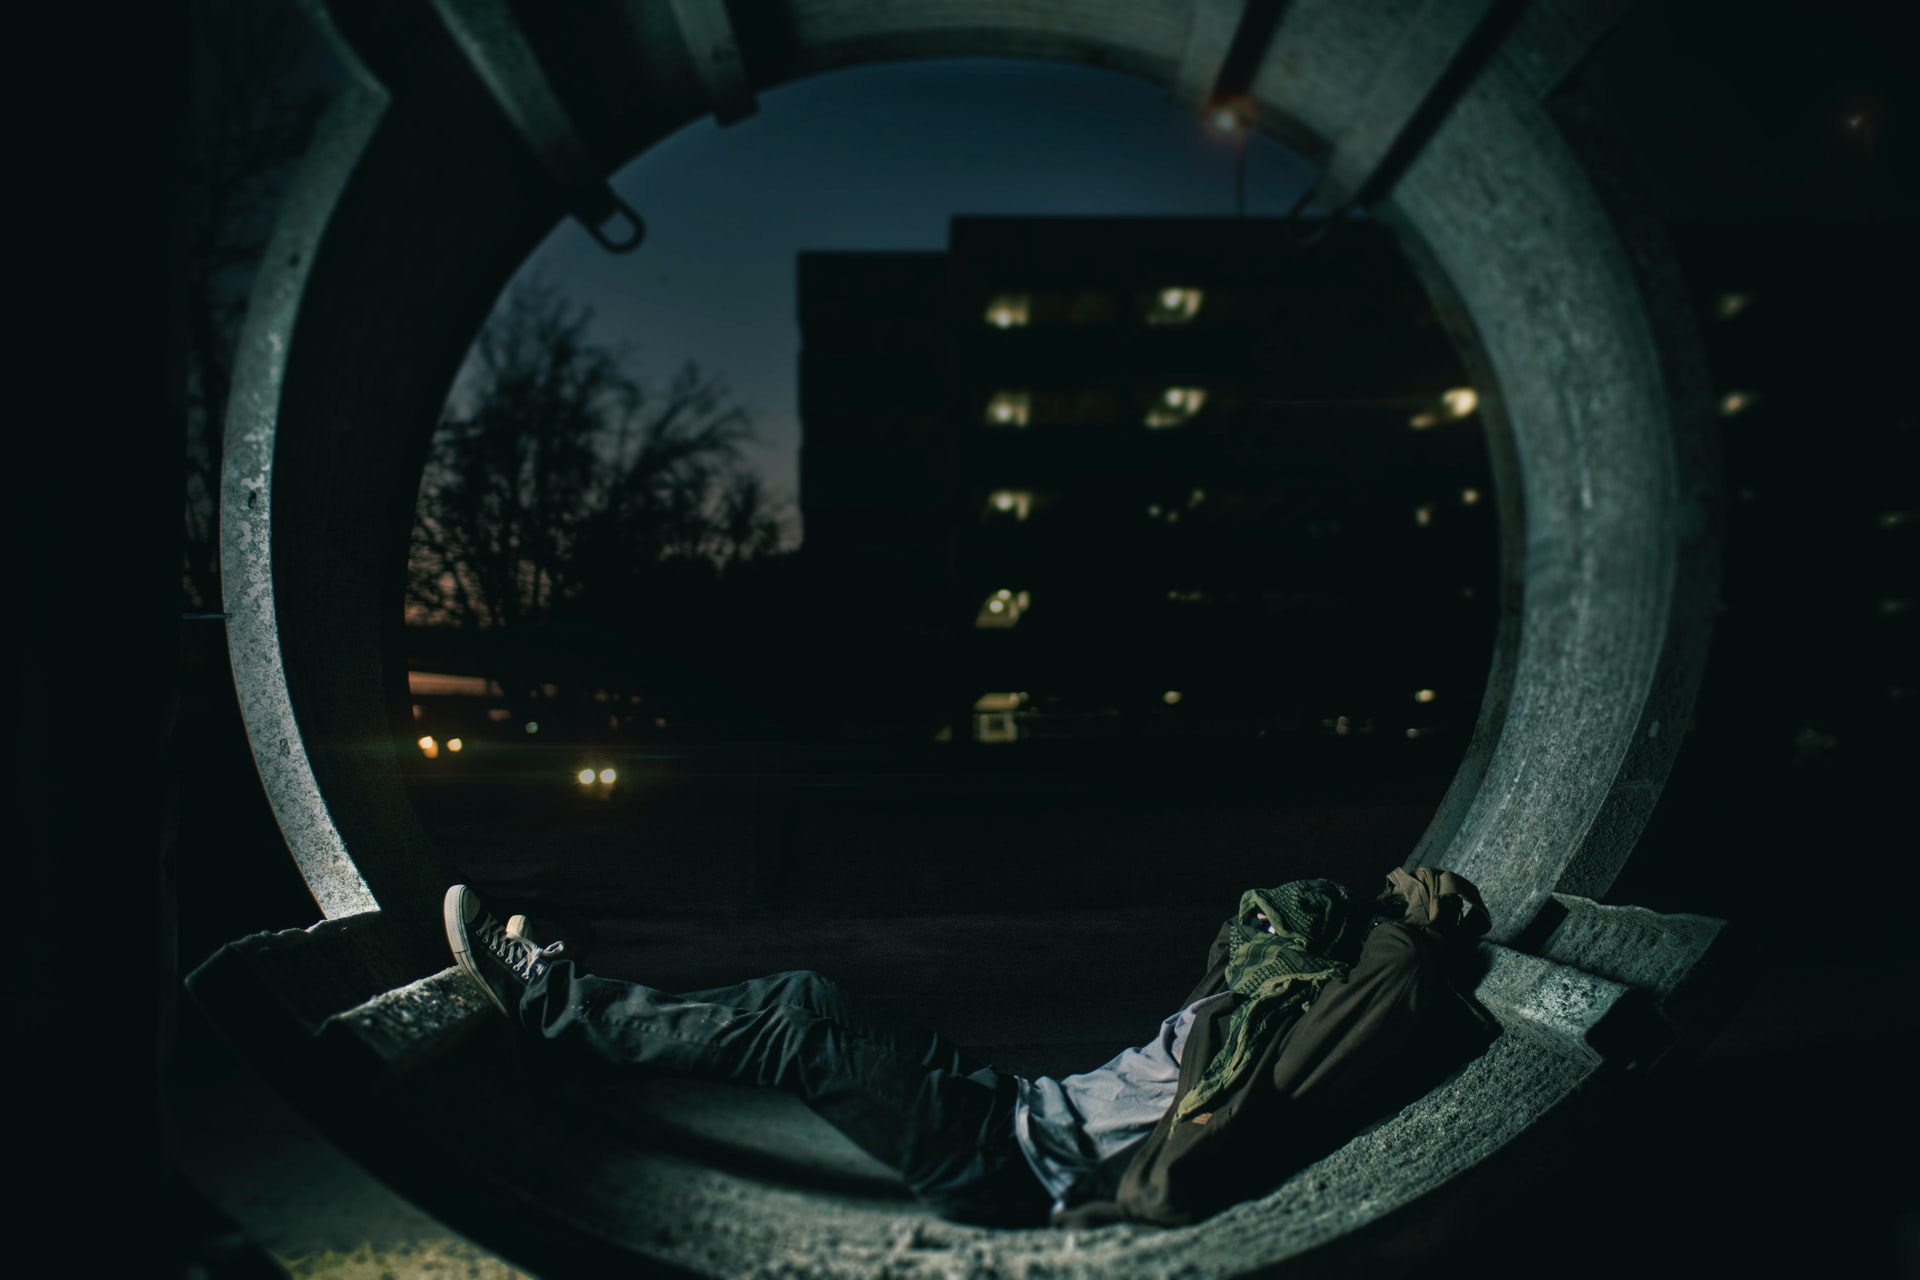 person laying inside drain pipe with building in the background